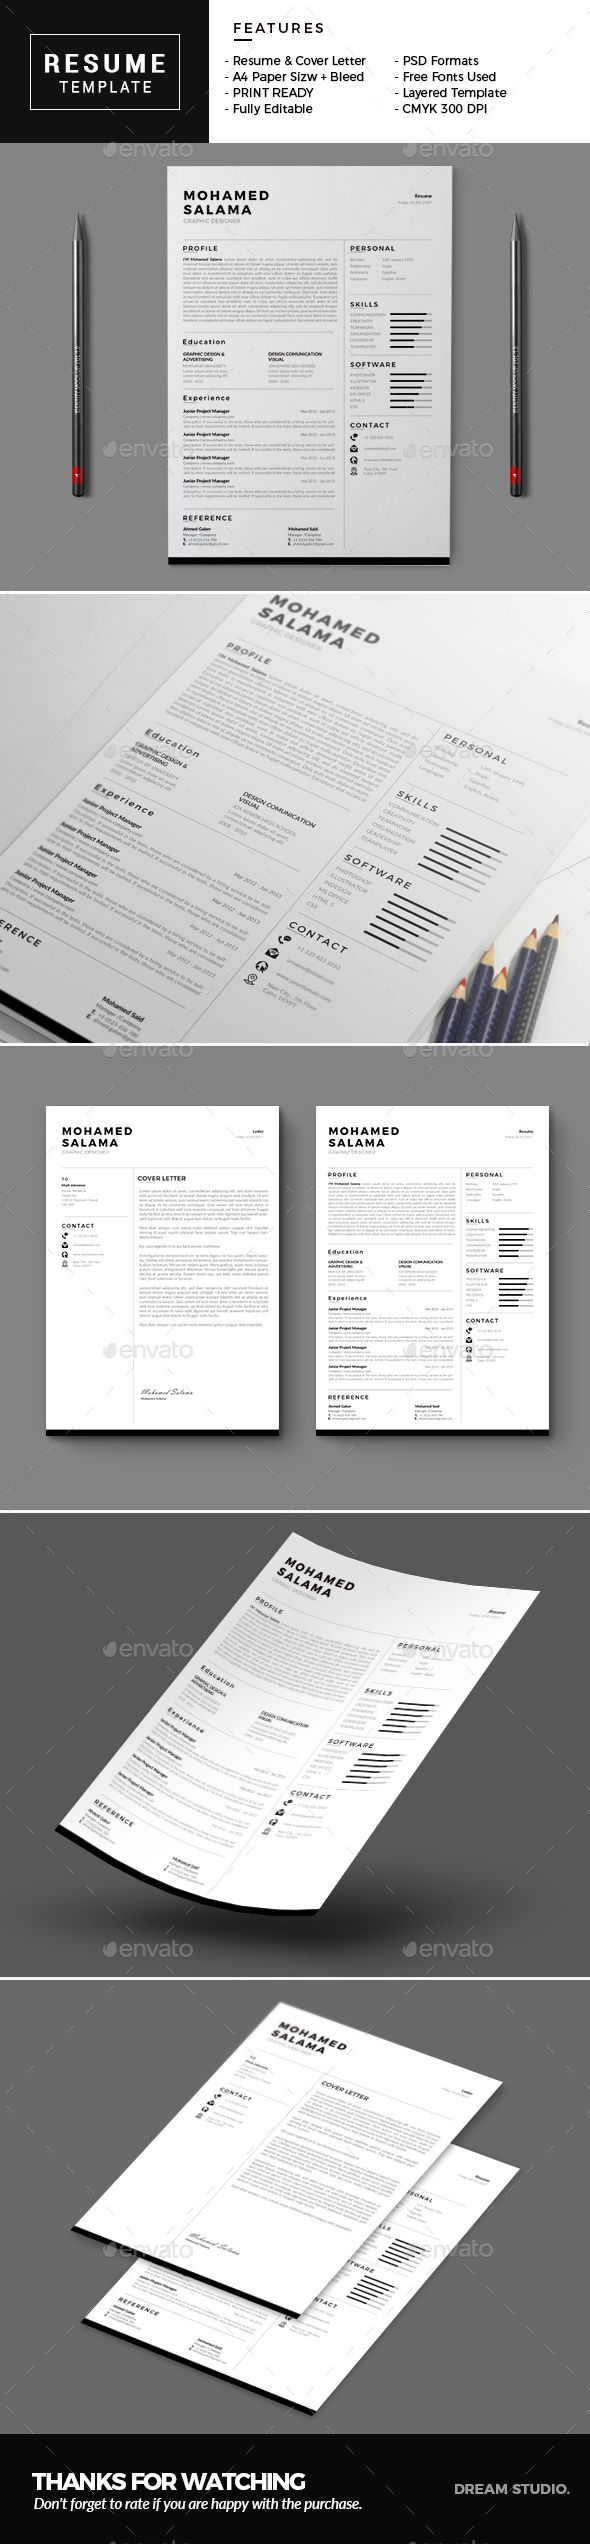 Resume 71 best Portfolio Resume images